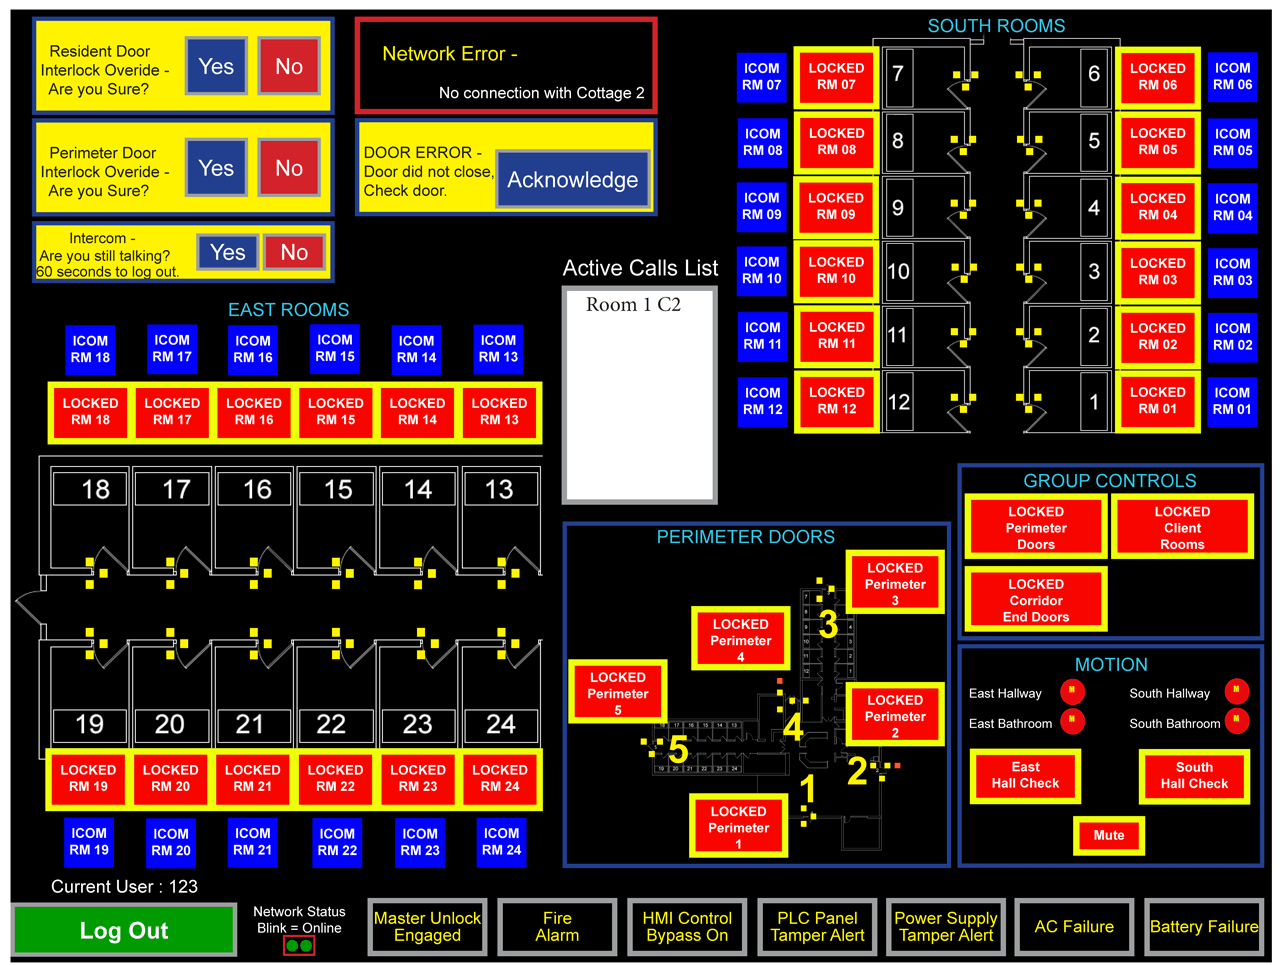 HMI screenshot based on geographical CAD drawing layout indicates door lock, motion detection, and call status of several resident rooms and hallways.